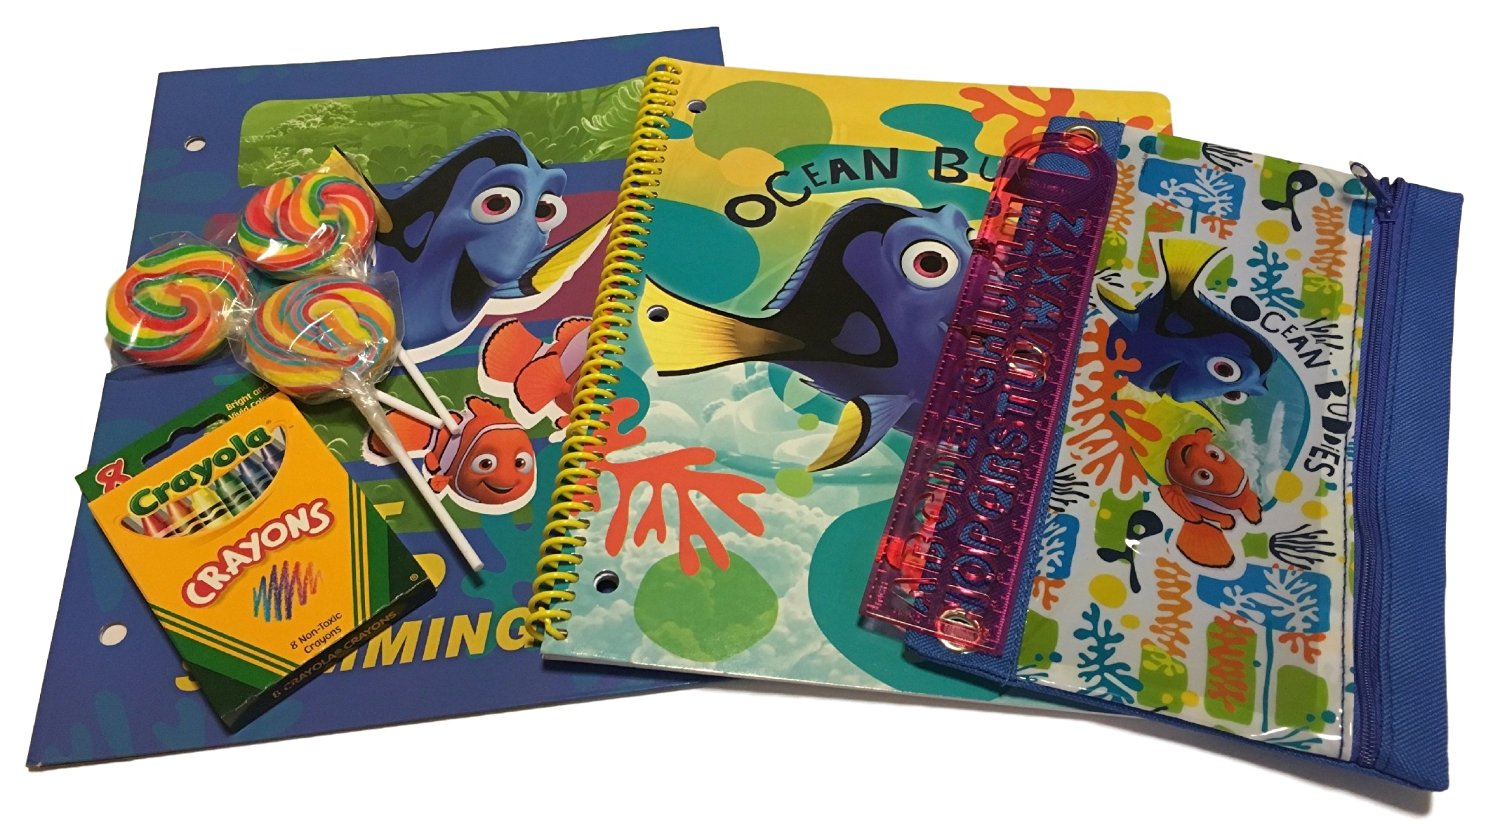 Disney Pixar Finding Dory School Supplies Set - 6 pcs - (Folder - Composition Book - Pencil Bag - Crayola Coloring Set - Ruler - Lollipops)